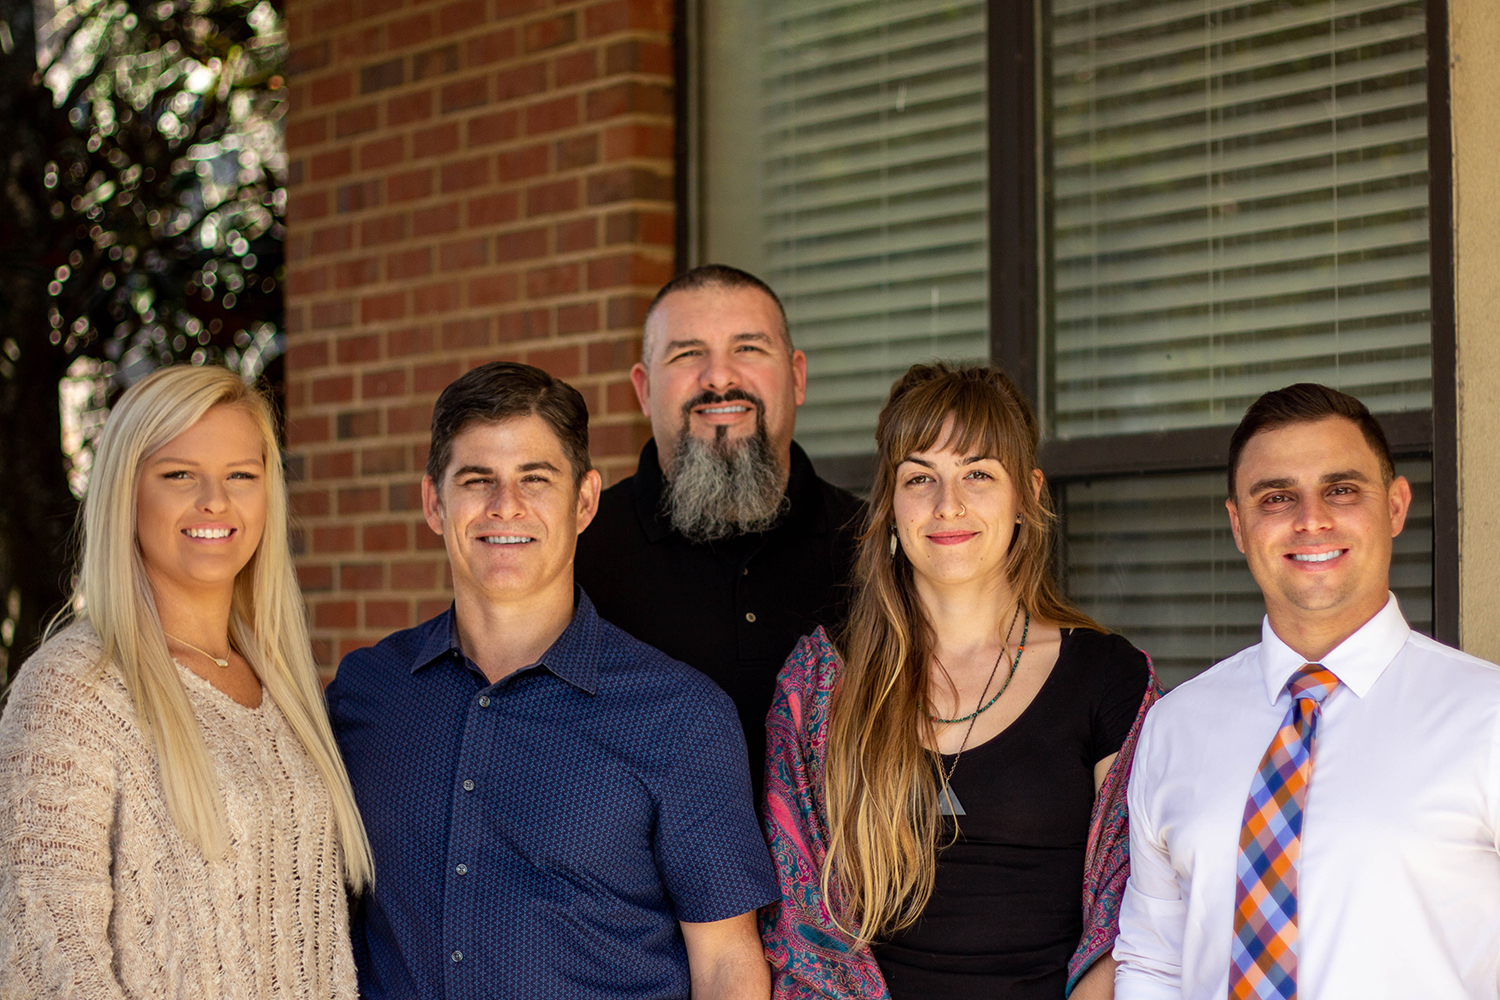 The healthcare team at West Family Chiropractic